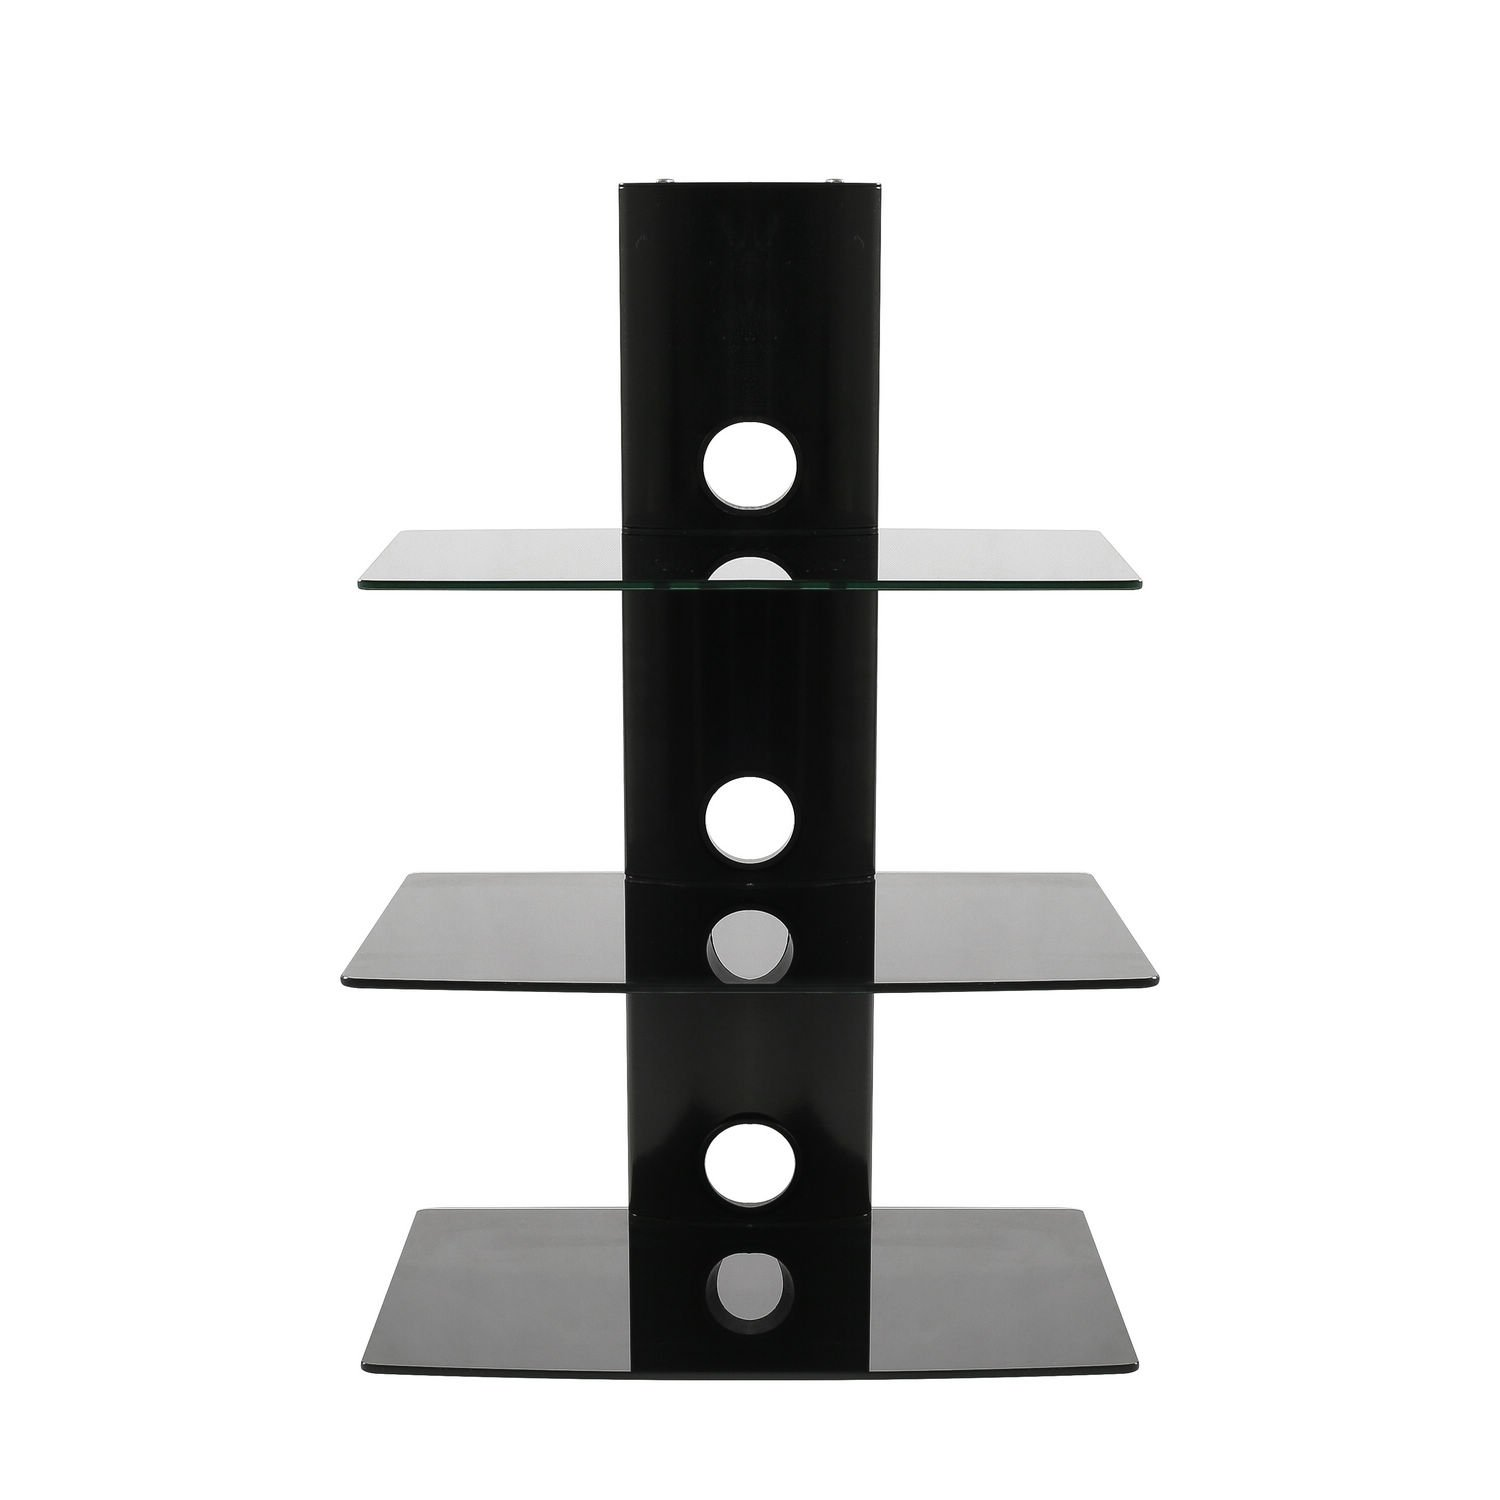 SevenFanS Floating Shelf Wall Mounted Tempered Glass Shelf for DVD Player/AV Receiver/TV Accessories, Black,3- Tier,Load Capacity 75lbs